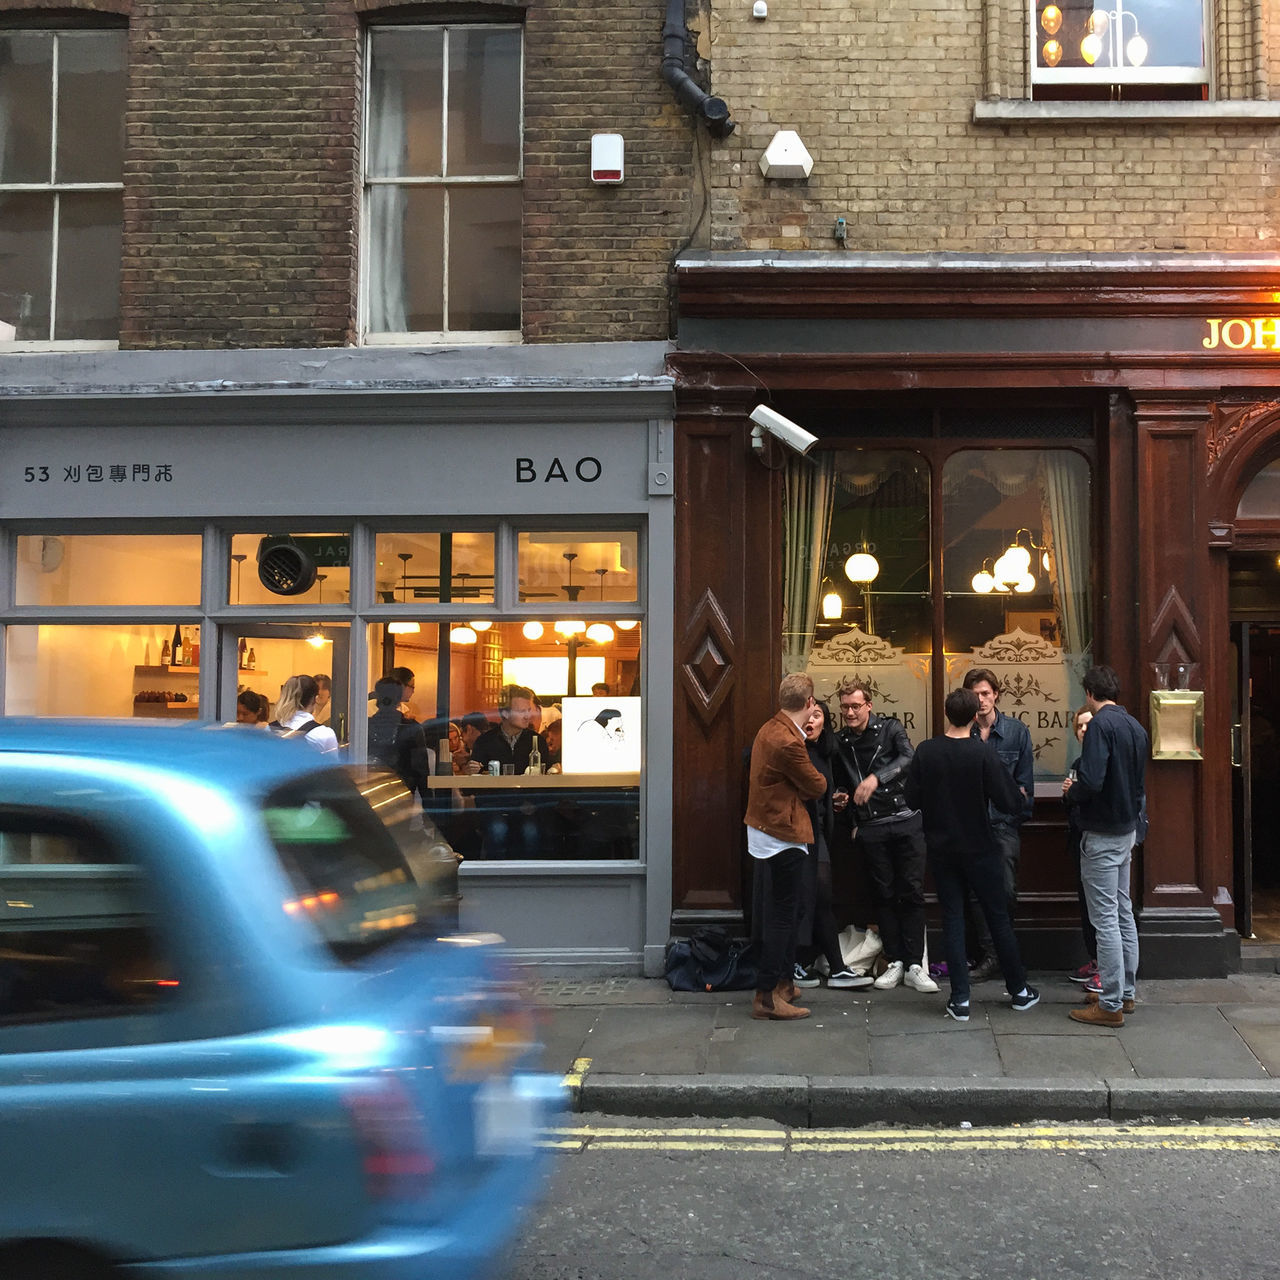 A group of friends in London hang out on a warm summer evening in front of John Snow Pub, next door to the popular restaurant Bao. Friends London Pub Sidewalk Adult Adults Only Architecture Building Exterior Built Structure Car City Day Editorial  Evening Leisure Activity Lifestyles Men Outdoors People Real People Restaurant Standing Street Togetherness Women